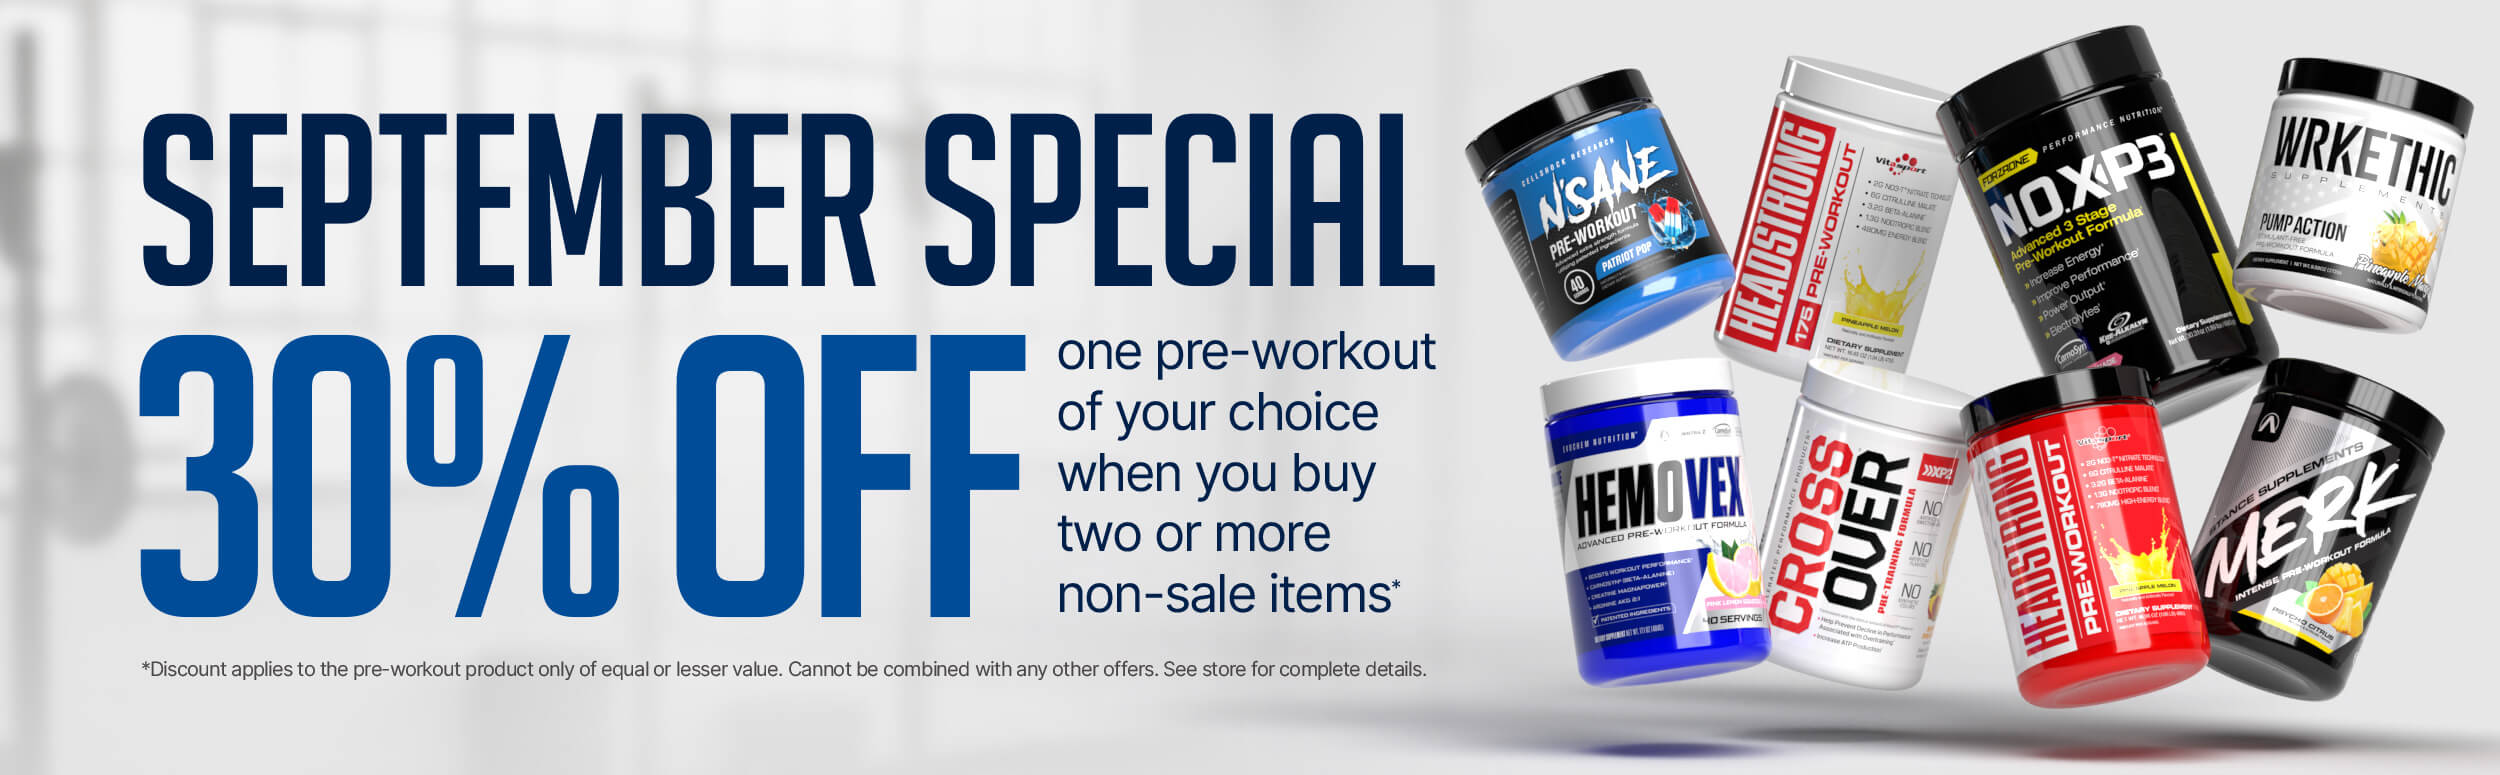 September special 30% off one pre-workout of your choice when you buy two or more non-sale items